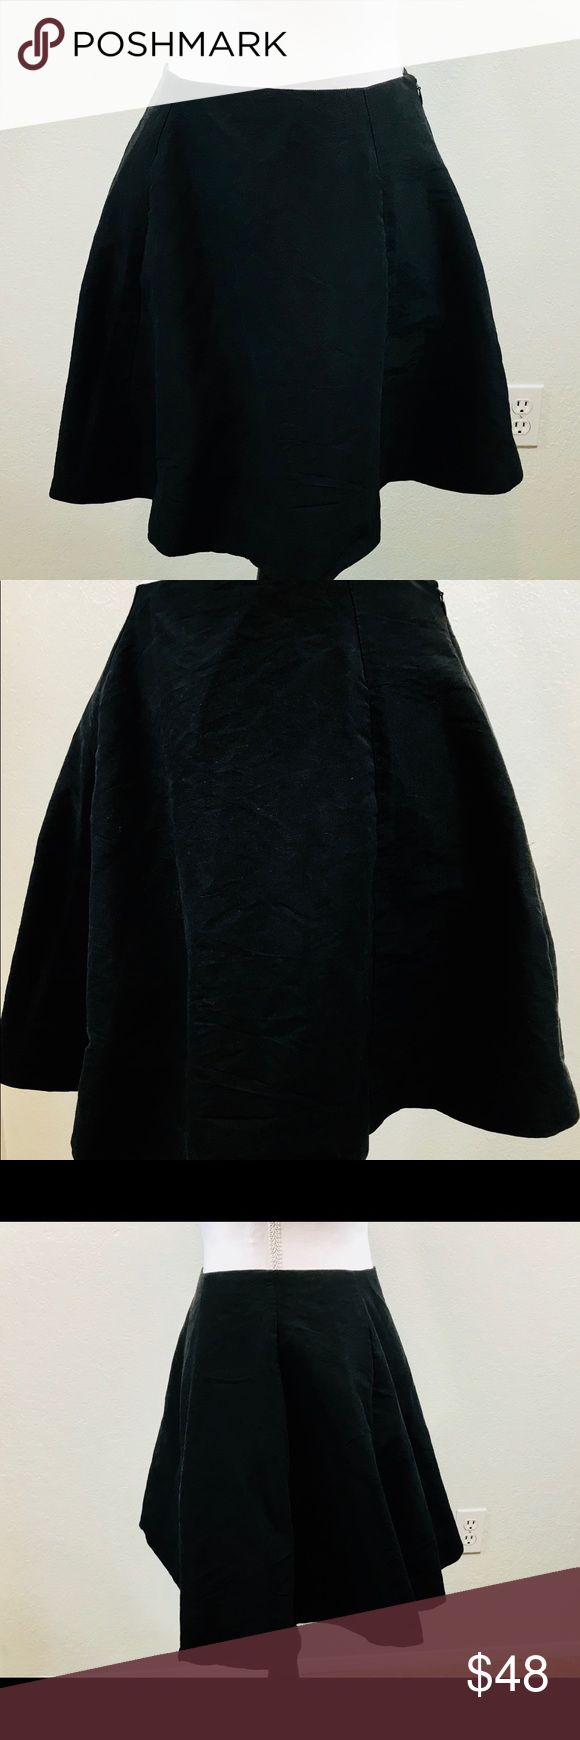 "KATE SPADE NEW YORK Bell Skirt Womans Size 4 Black KATE SPADE NEW YORK Bell Skirt Womans Size 4 Black Solid Mini Lined Cotton Silk Side Zip  Waist: 26"" Length: 17"" kate spade Skirts Mini"